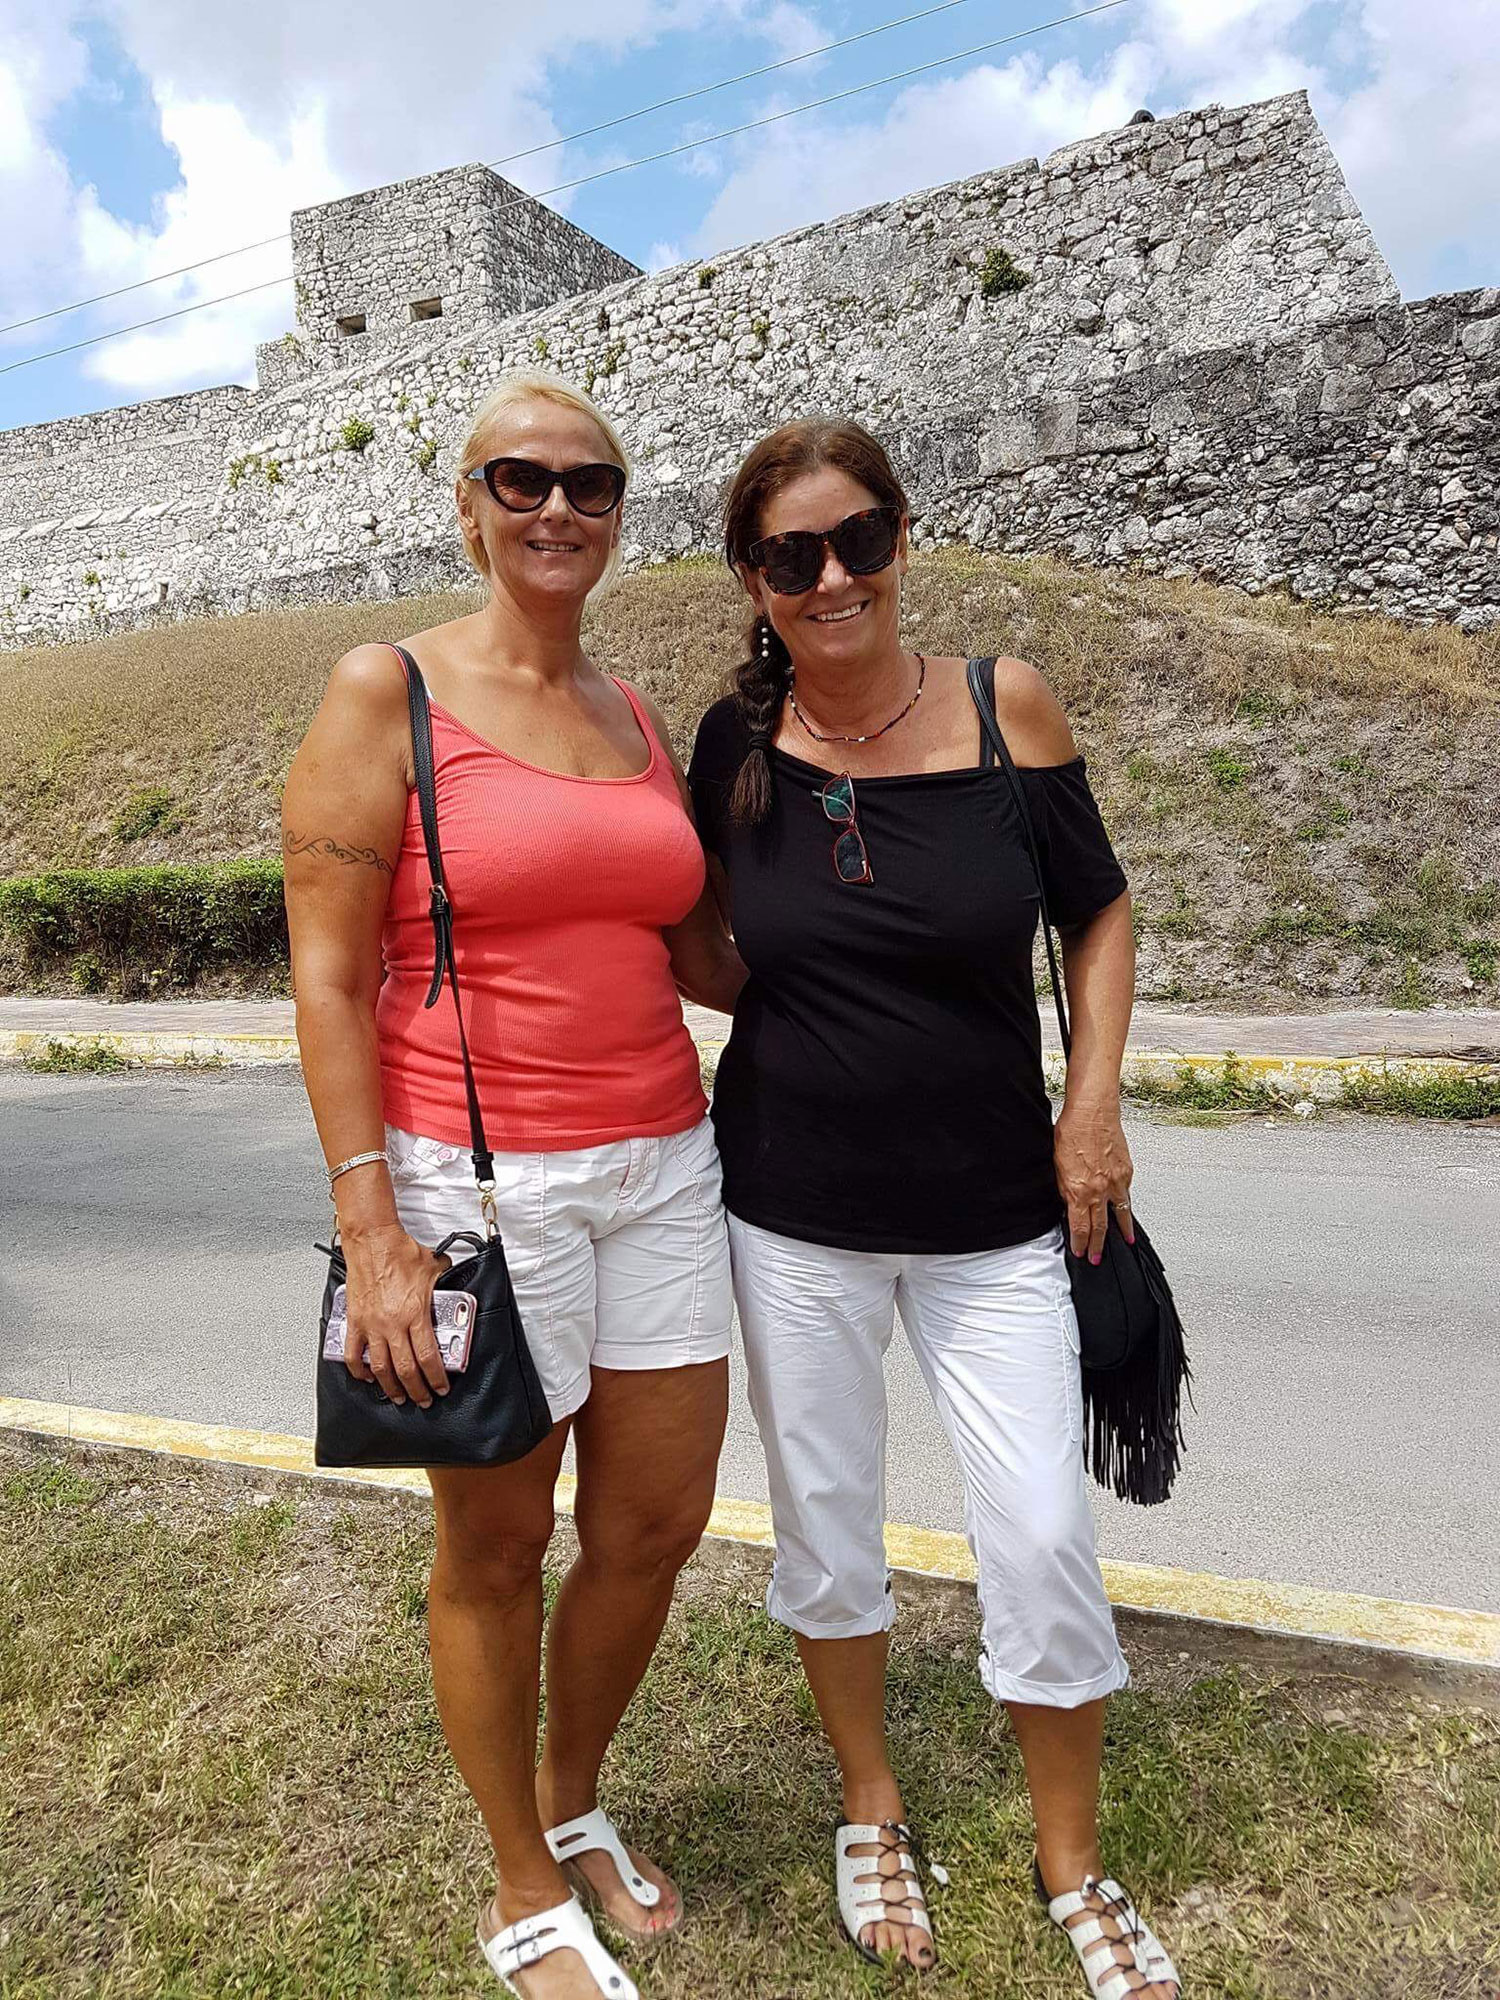 A visit with my friend Eva in 2016, in front of the fortress.